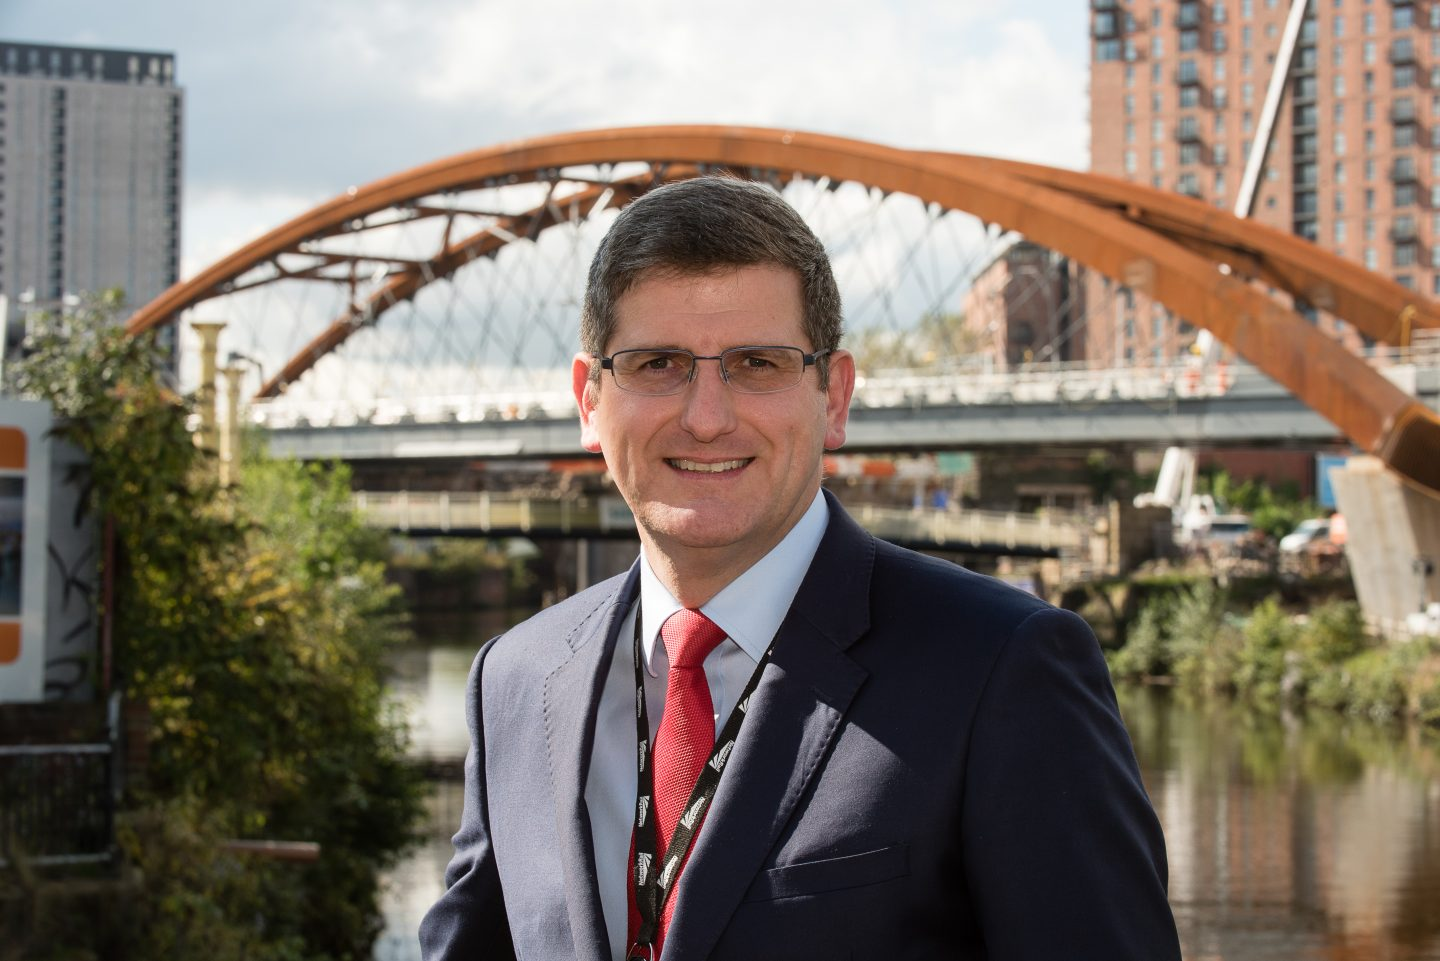 It's all down to good planning: an interview with Network Rail's Francis Paonessa